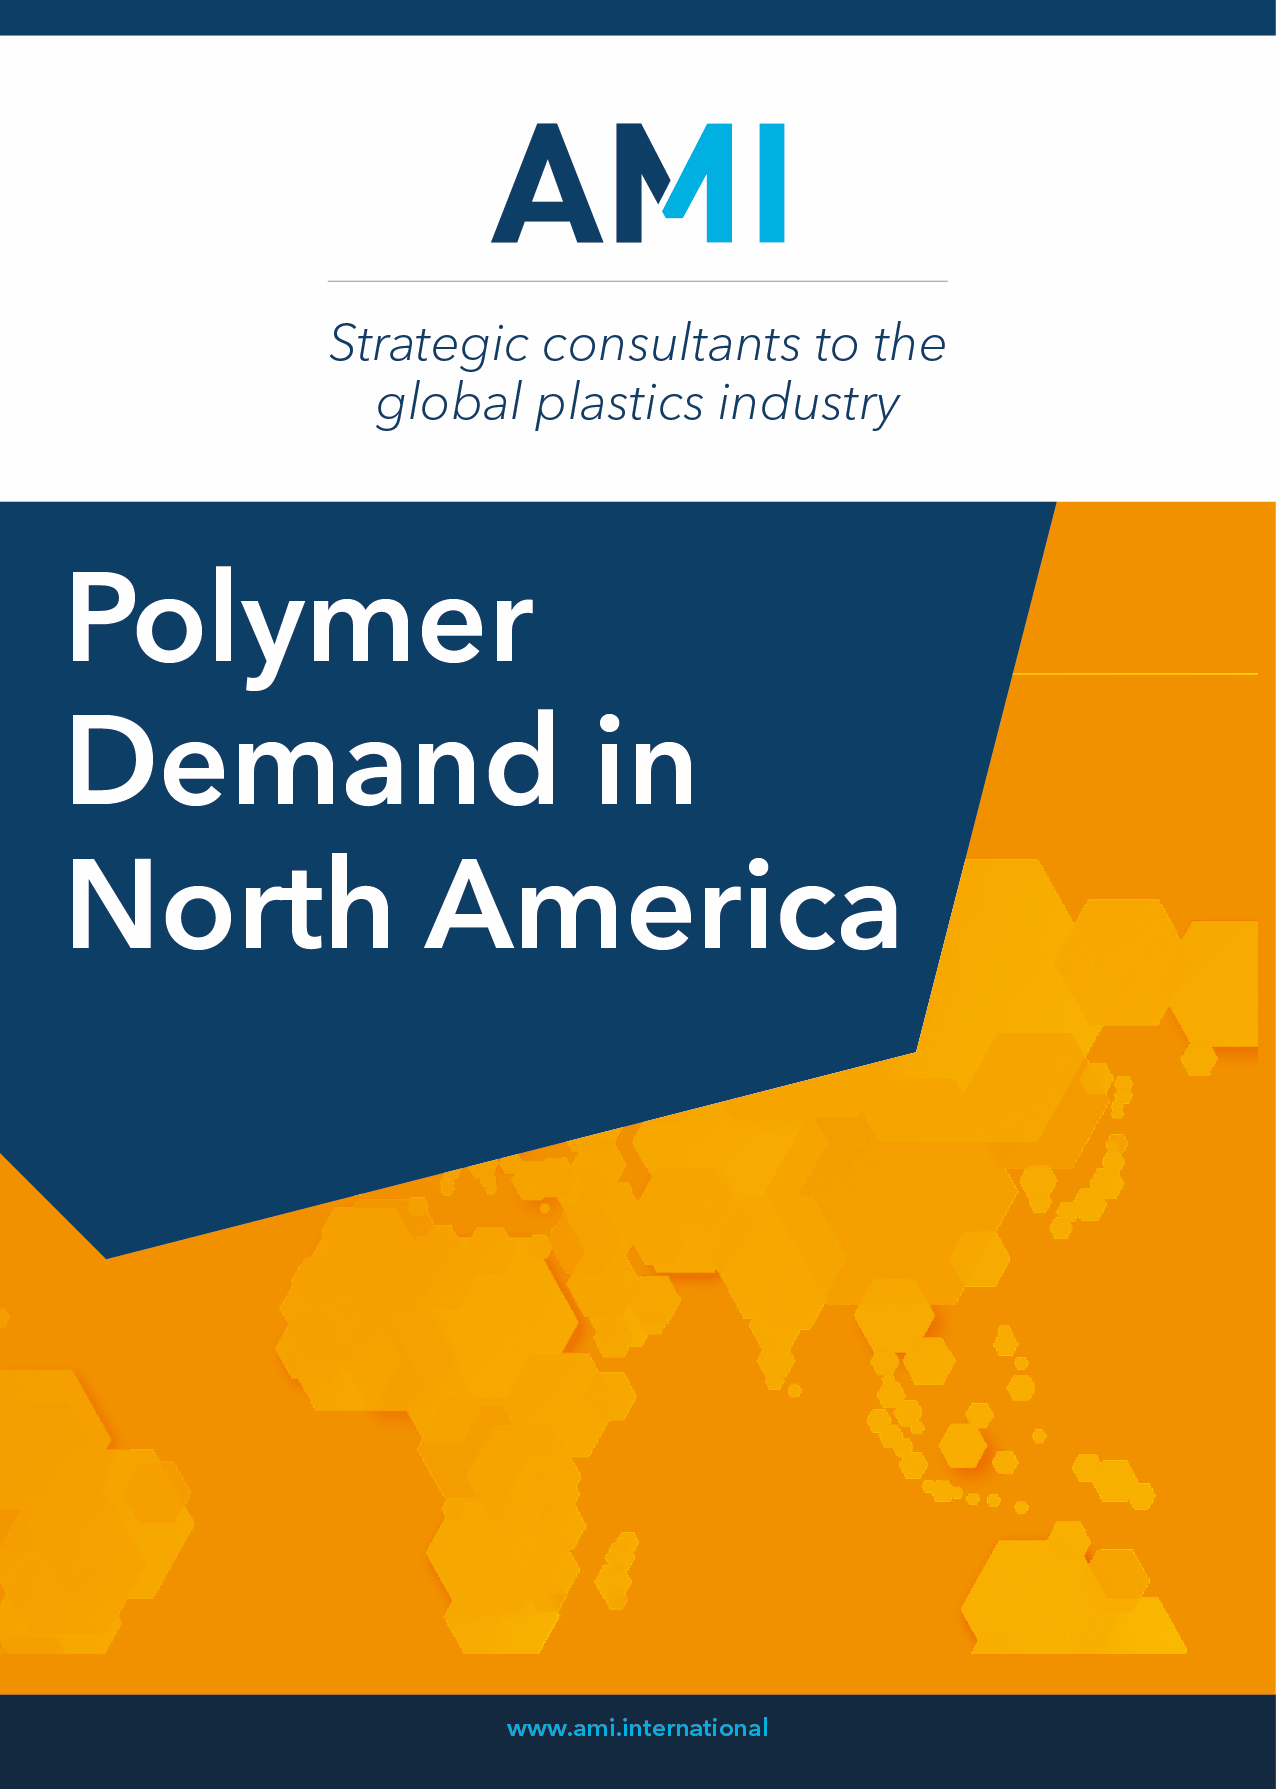 Polymer demand in North America